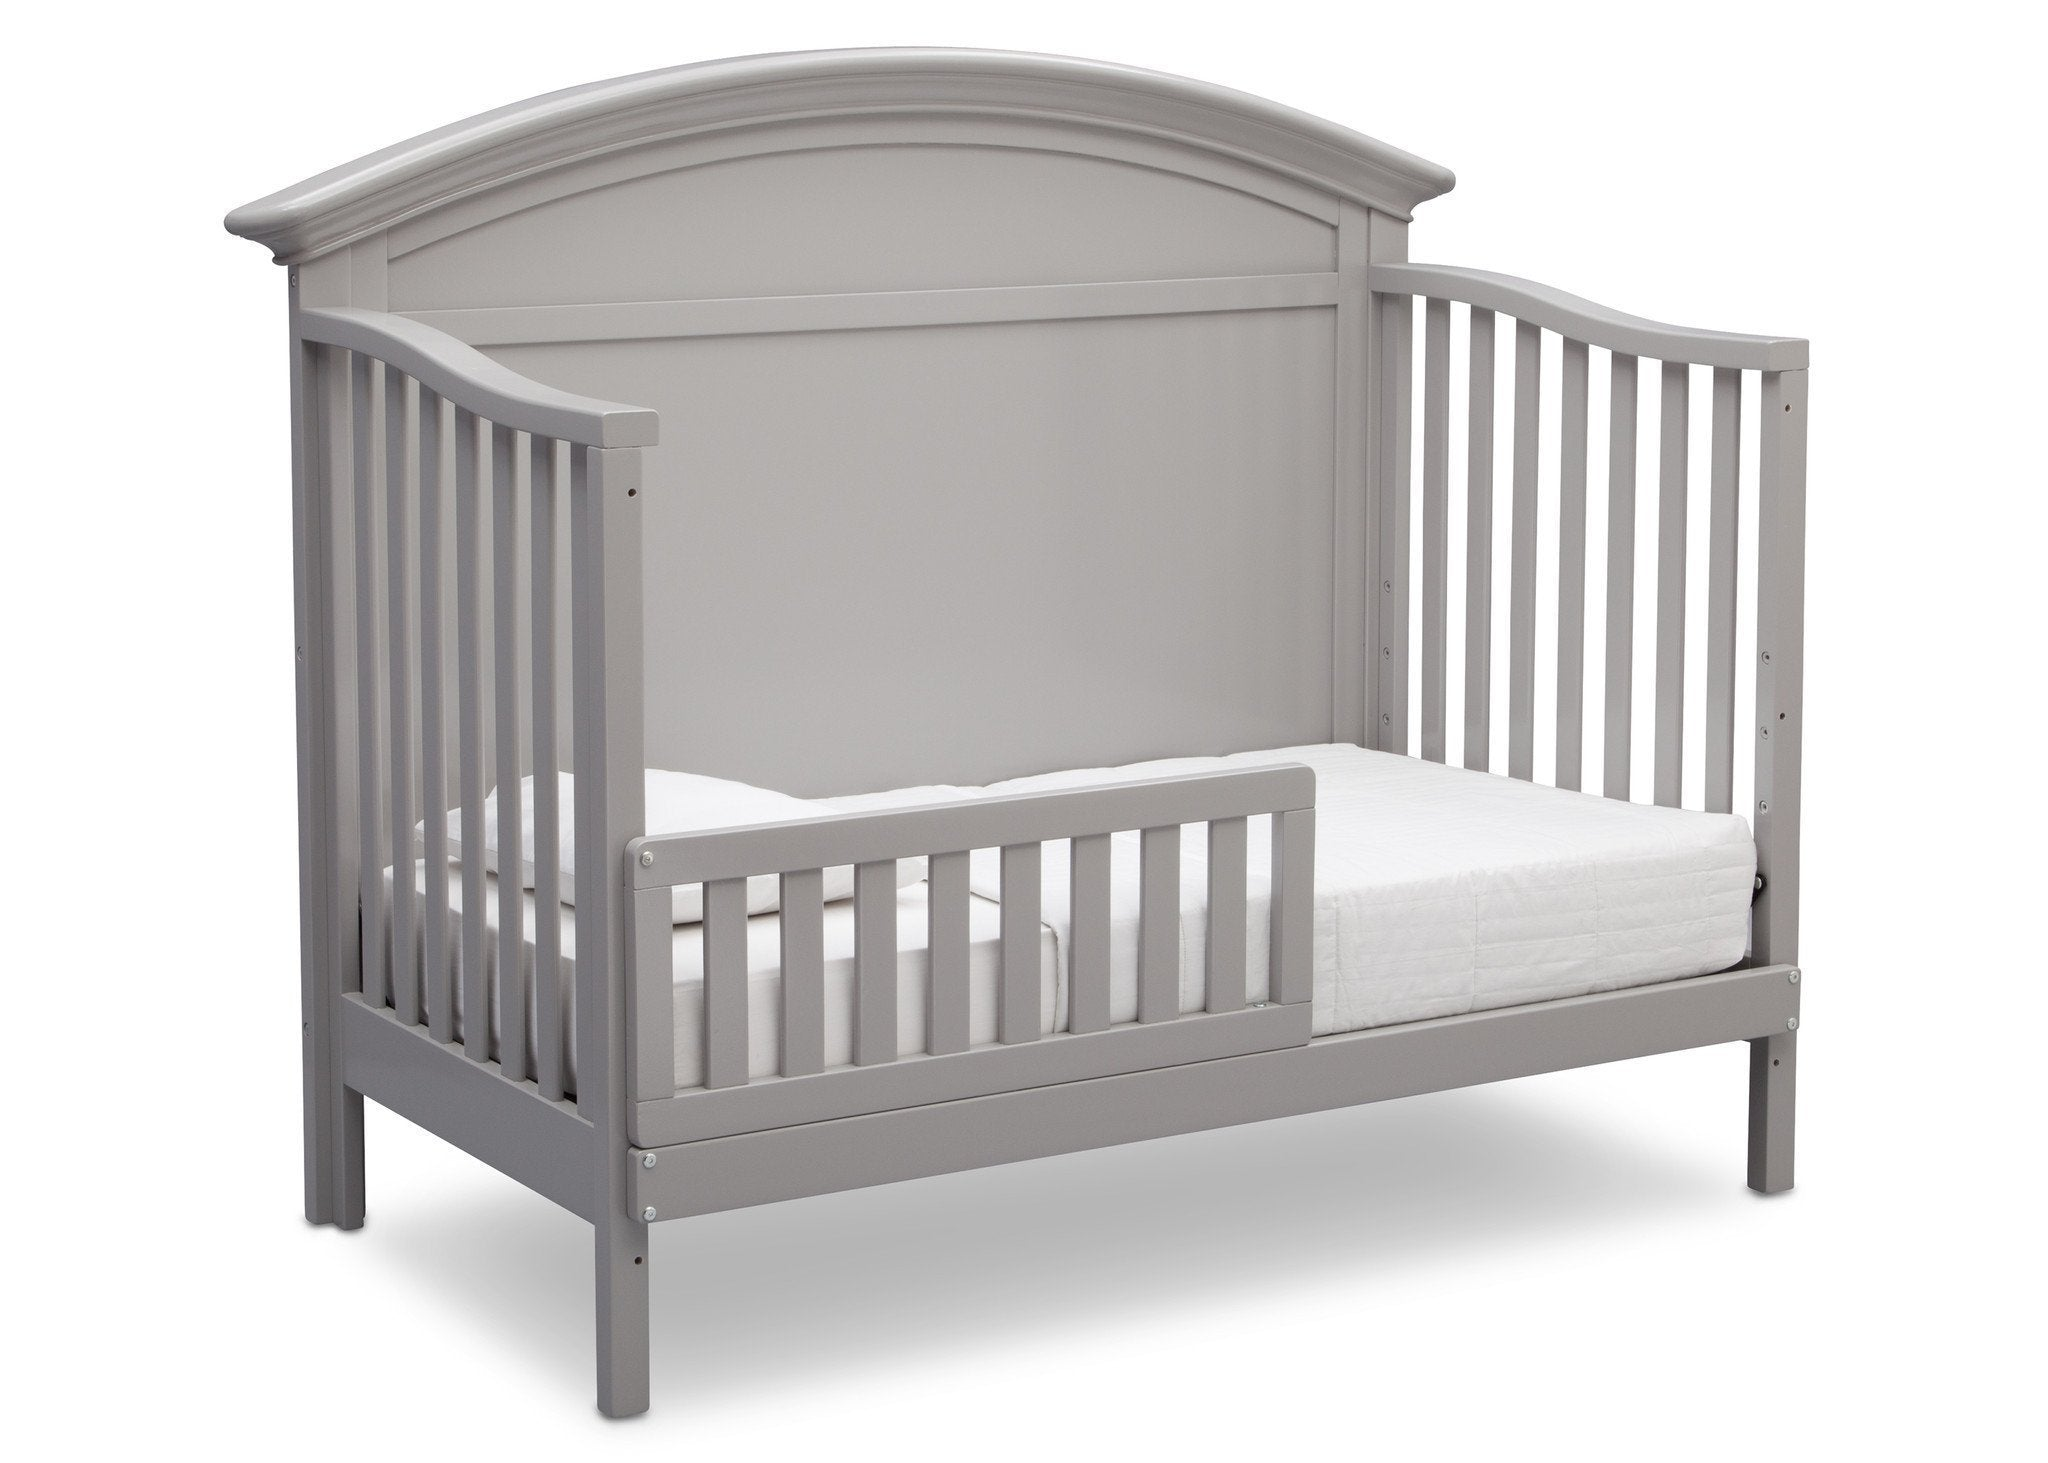 Serta Grey (026) Adelaide 4-in-1 Crib, Side View with Toddler Bed Conversion a5a